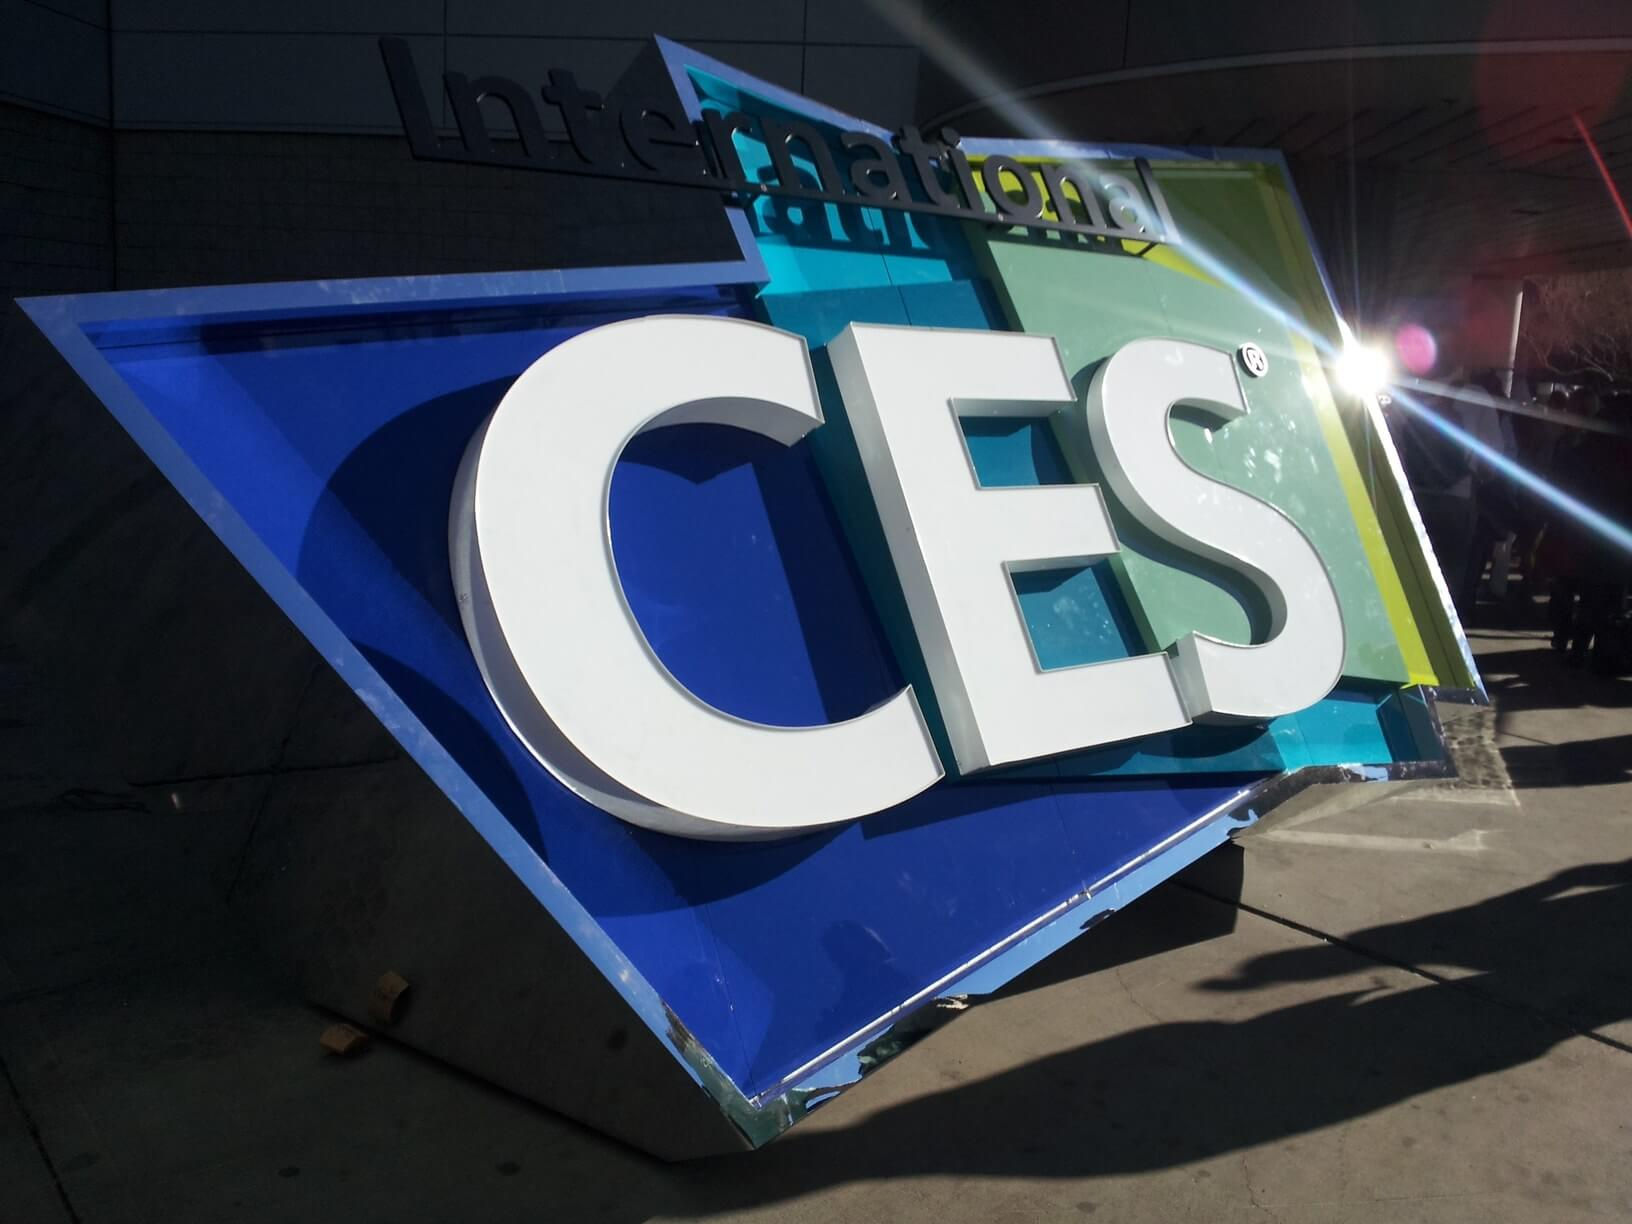 2015 International Consumer Electronics Show (CES)